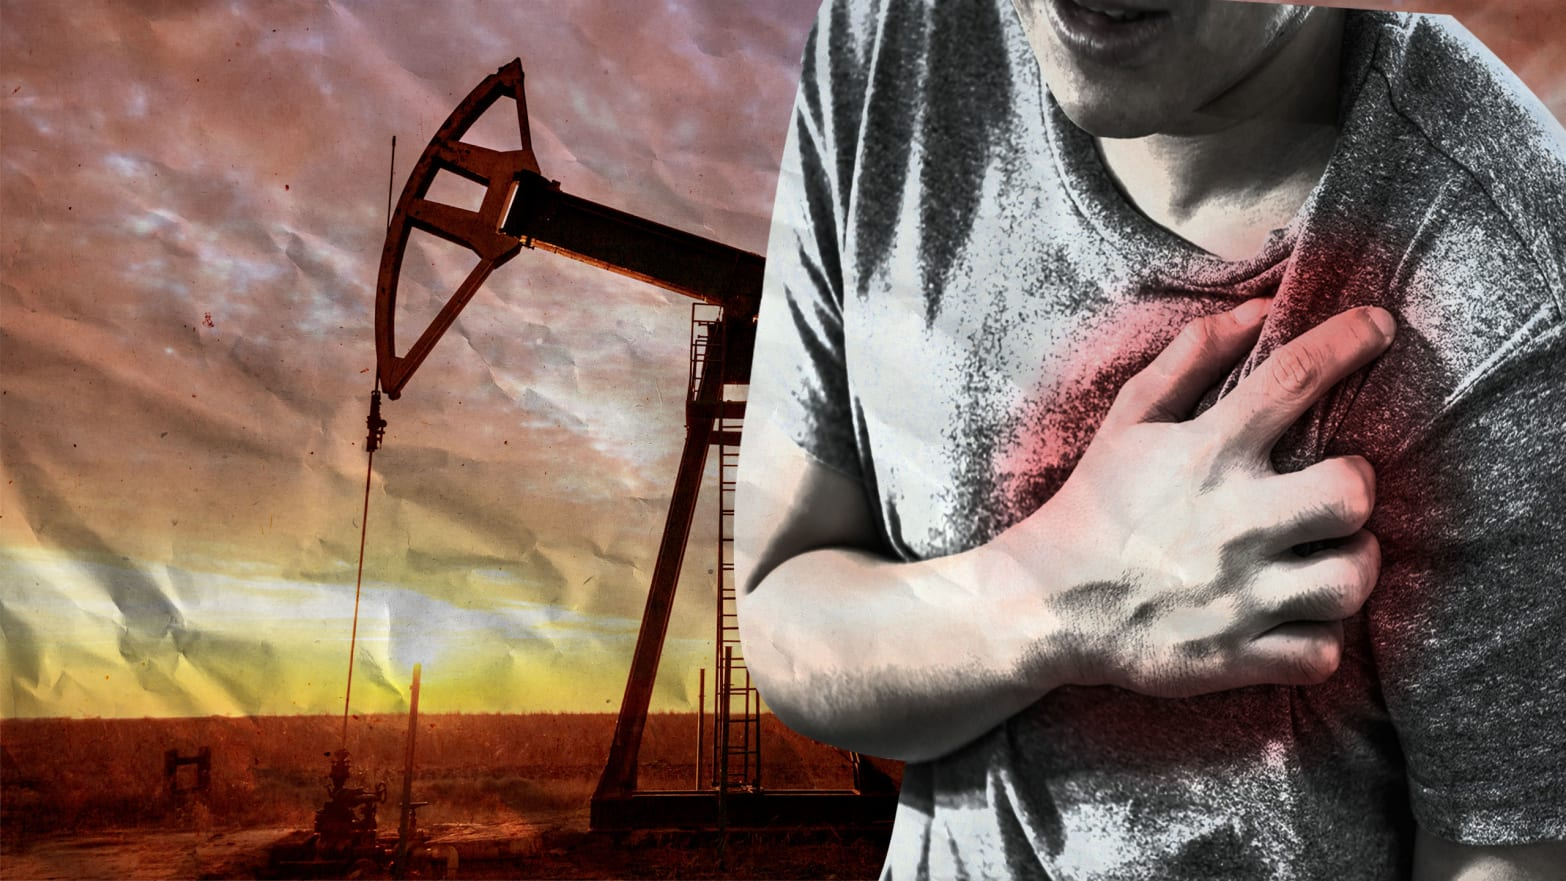 image of man holding clutching chest oil energy drill behind fracking heart disease attack microbe plaque environment movement